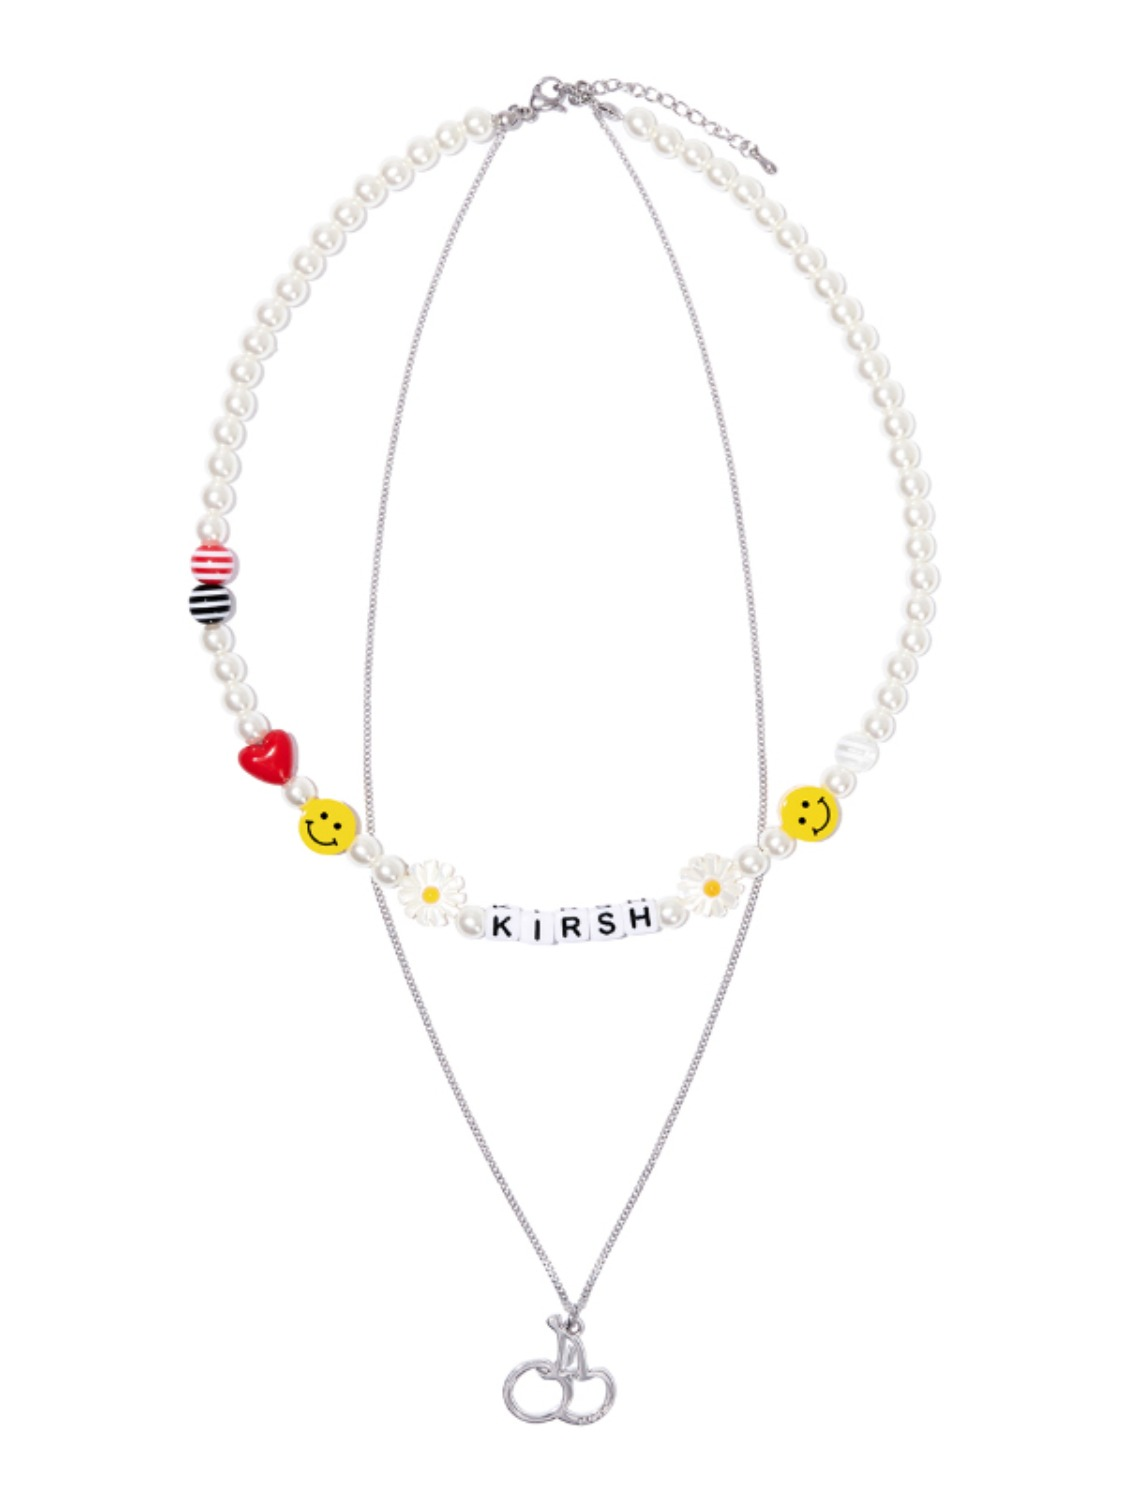 (4월 27일 예약발송)CHERRY BEADS NECKLACE KH [MULTI]